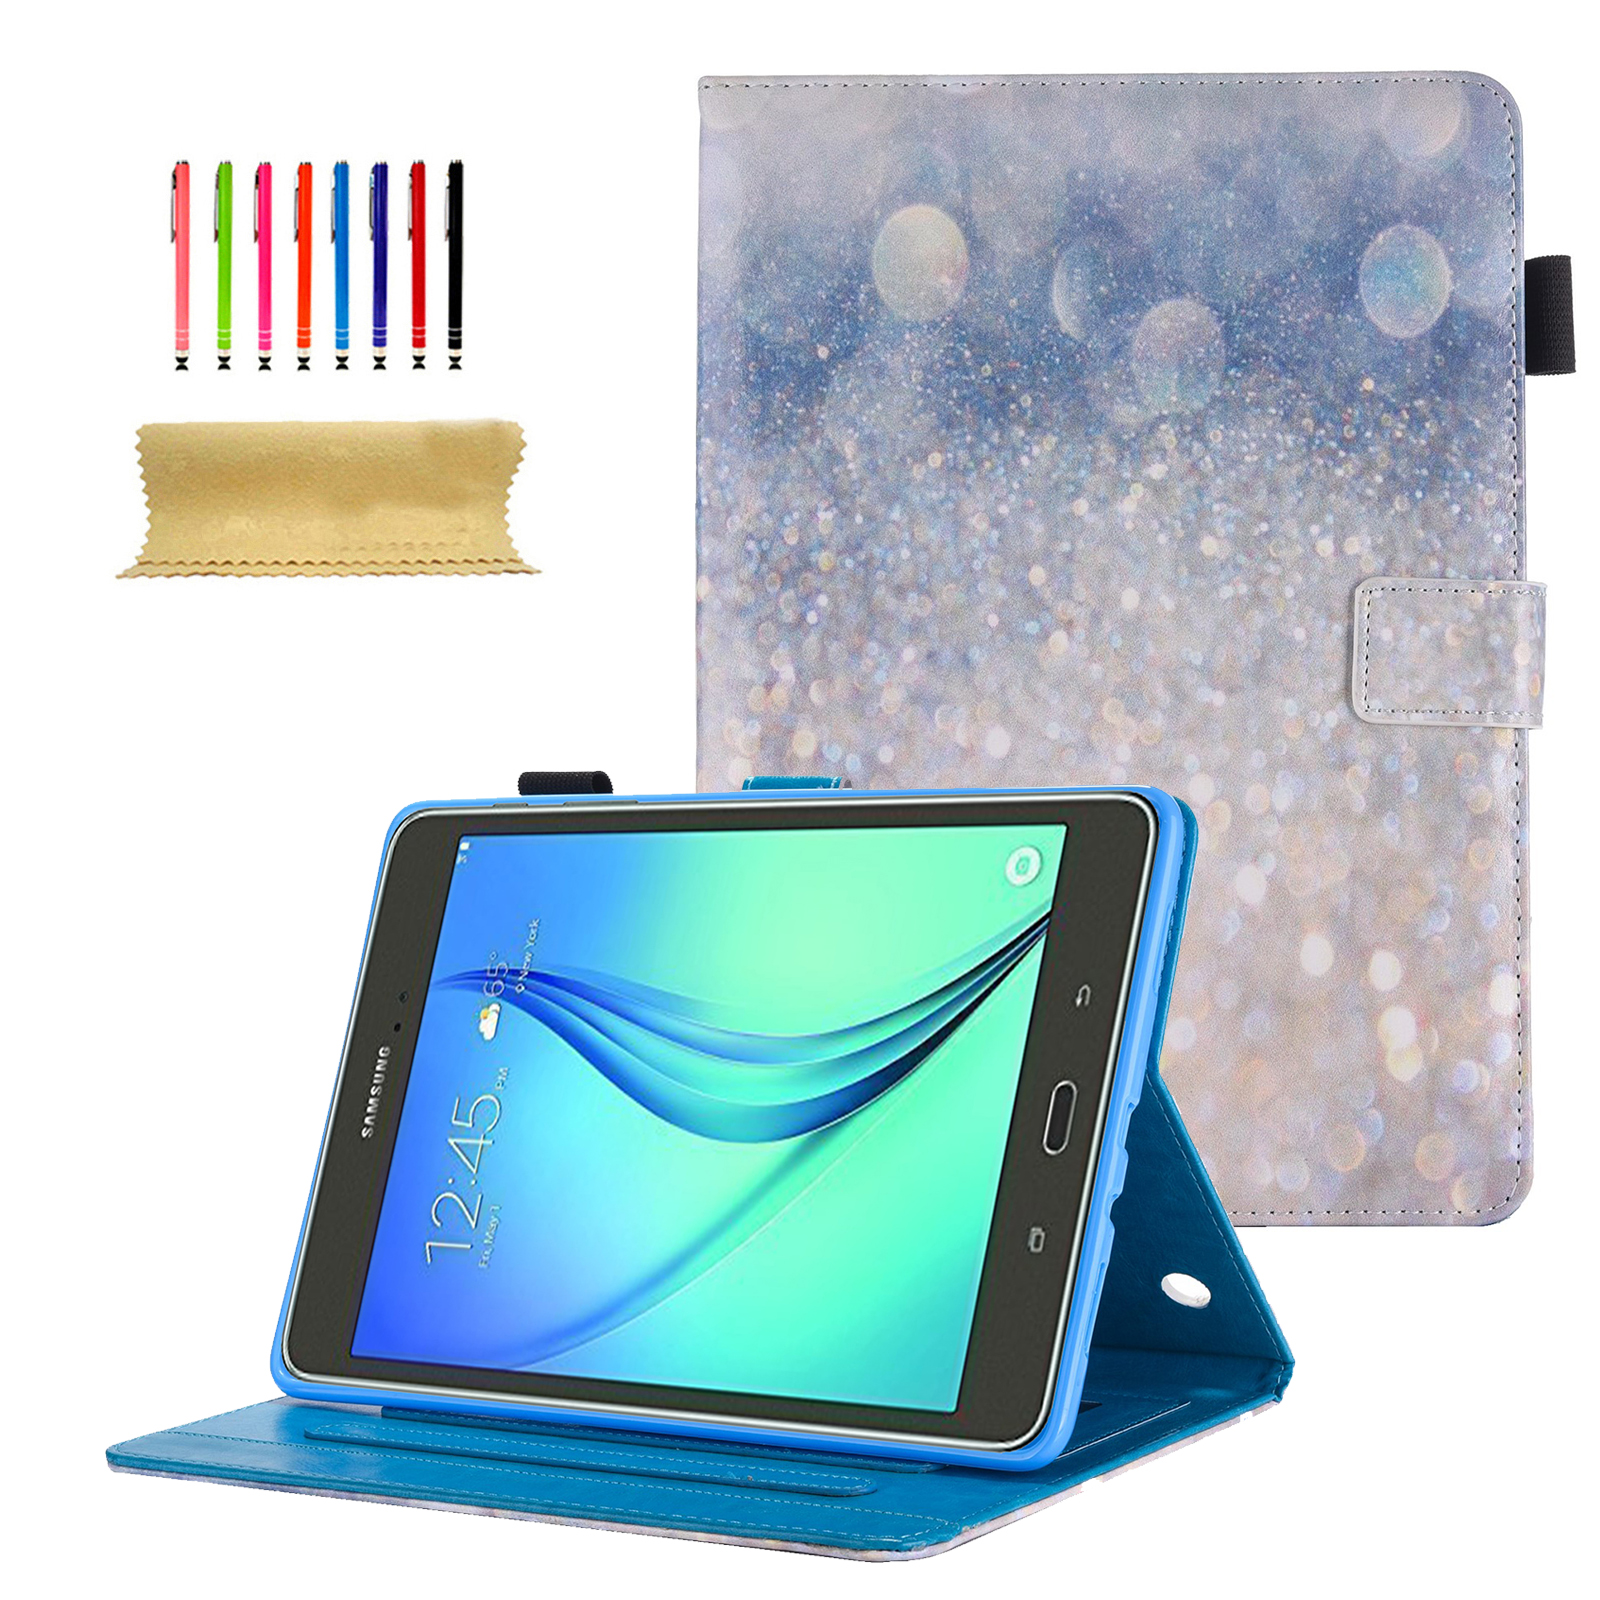 Galaxy Tab A 9.7 Case, Goodest PU Leather Folio Case Cover for Samsung Galaxy Tab A 9.7 Inch Tablet SM-T550 T555 P550 P555 with Auto Wake/Sleep & Card Slots, Multiple Viewing Angles, Sparkling Sand